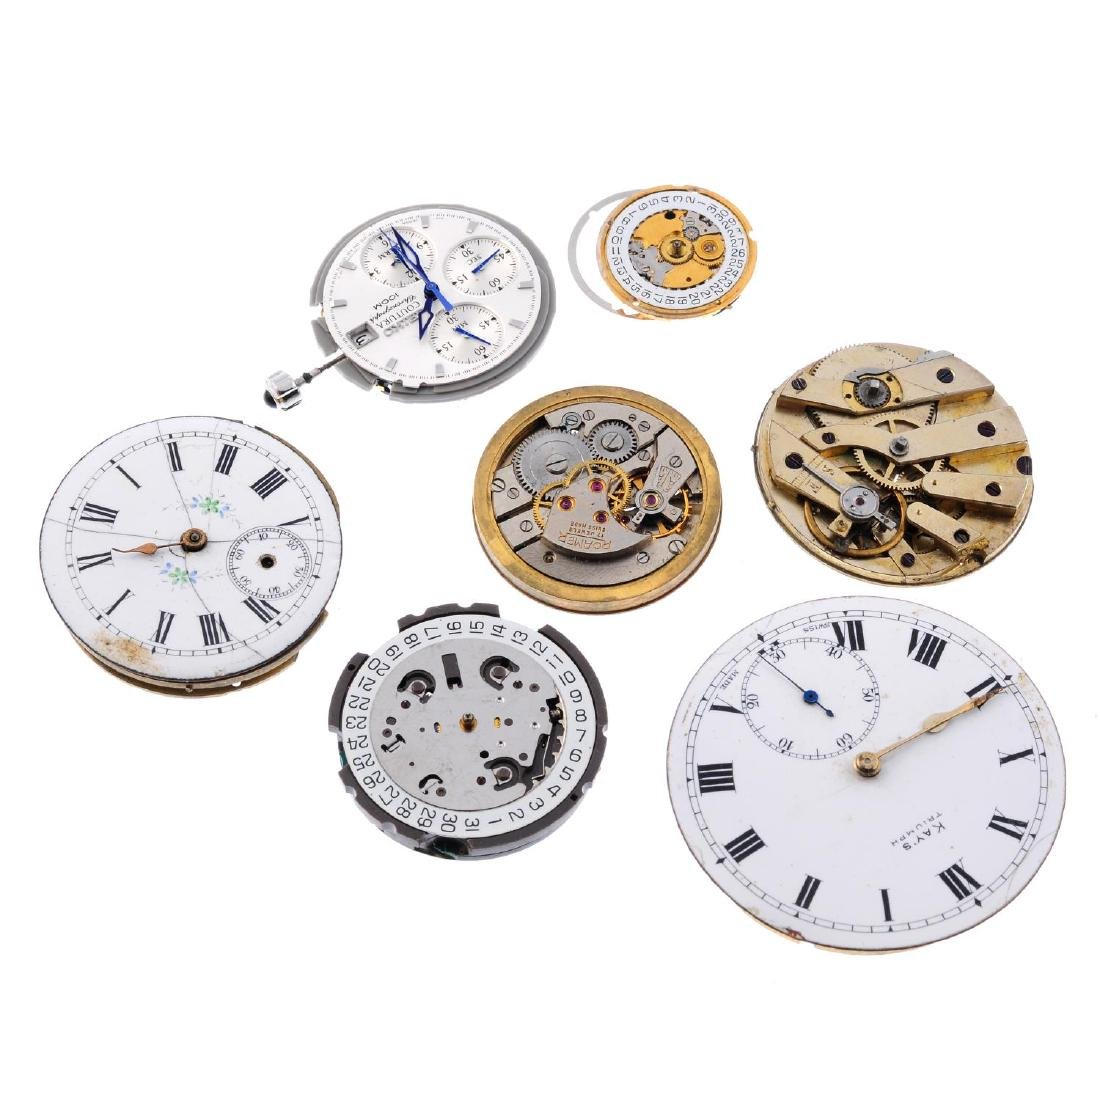 A bag of assorted watch and pocket watch movements. All